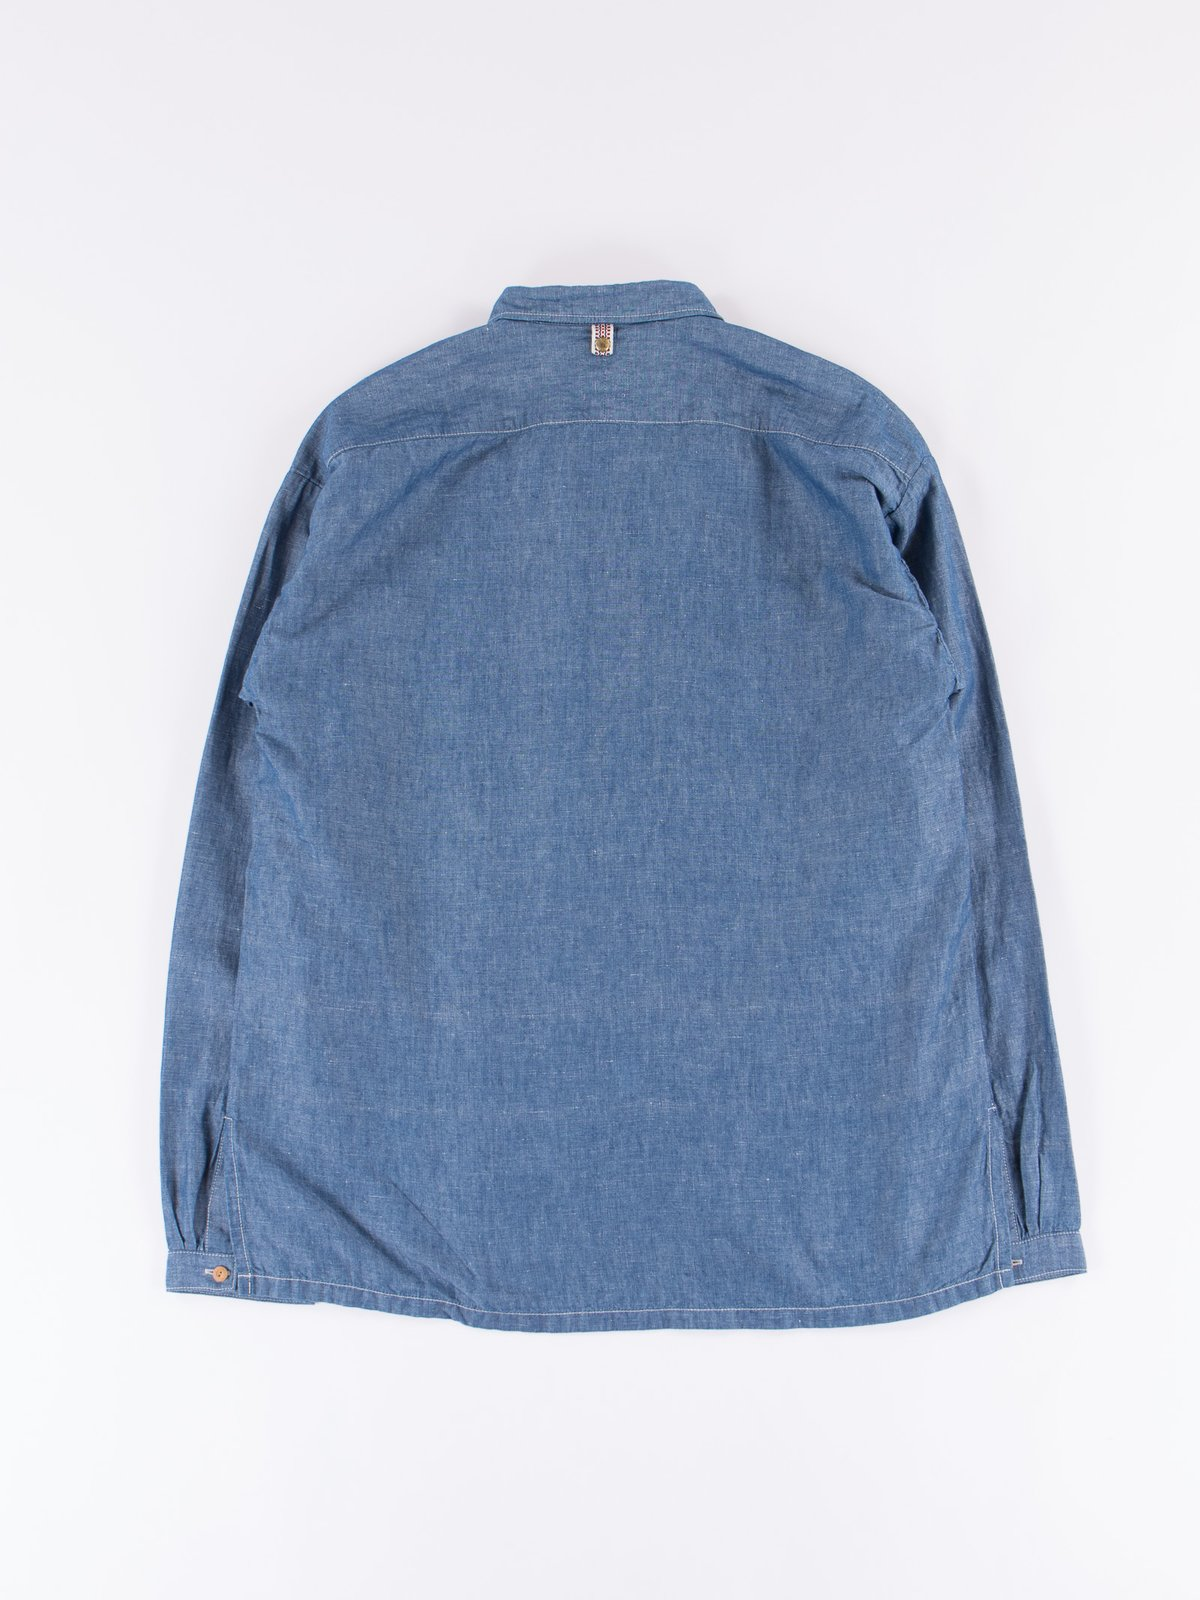 Blue Chambray Kerchief Tunic Shirt - Image 6